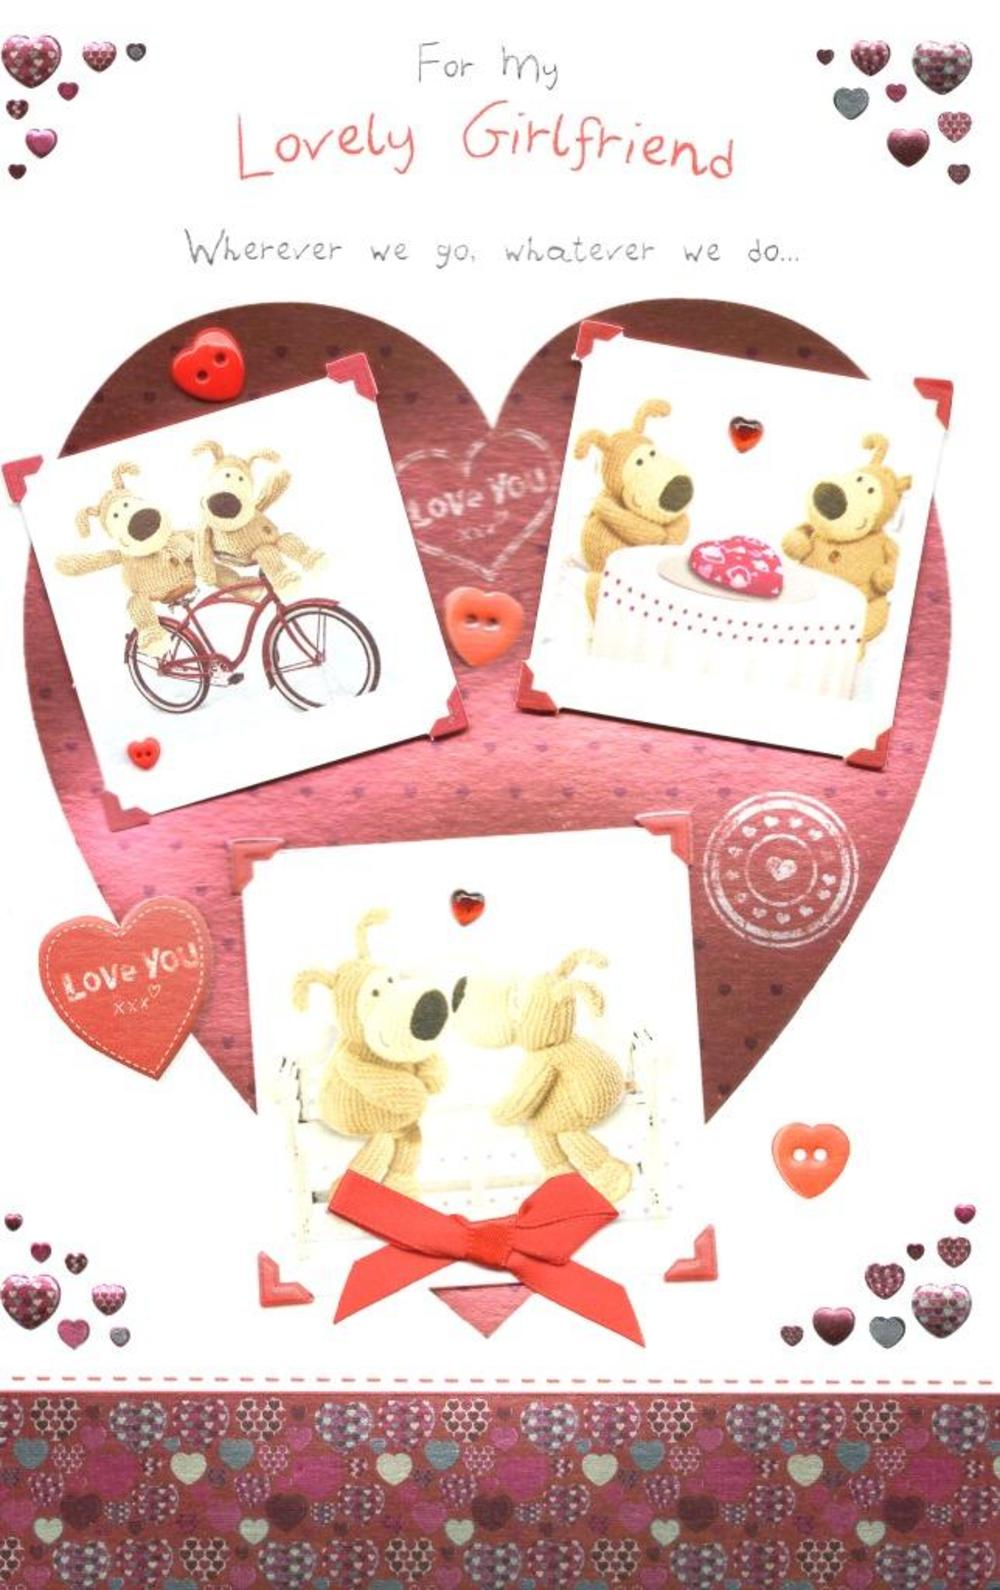 Boofle Lovely Girlfriend Valentine's Day Card